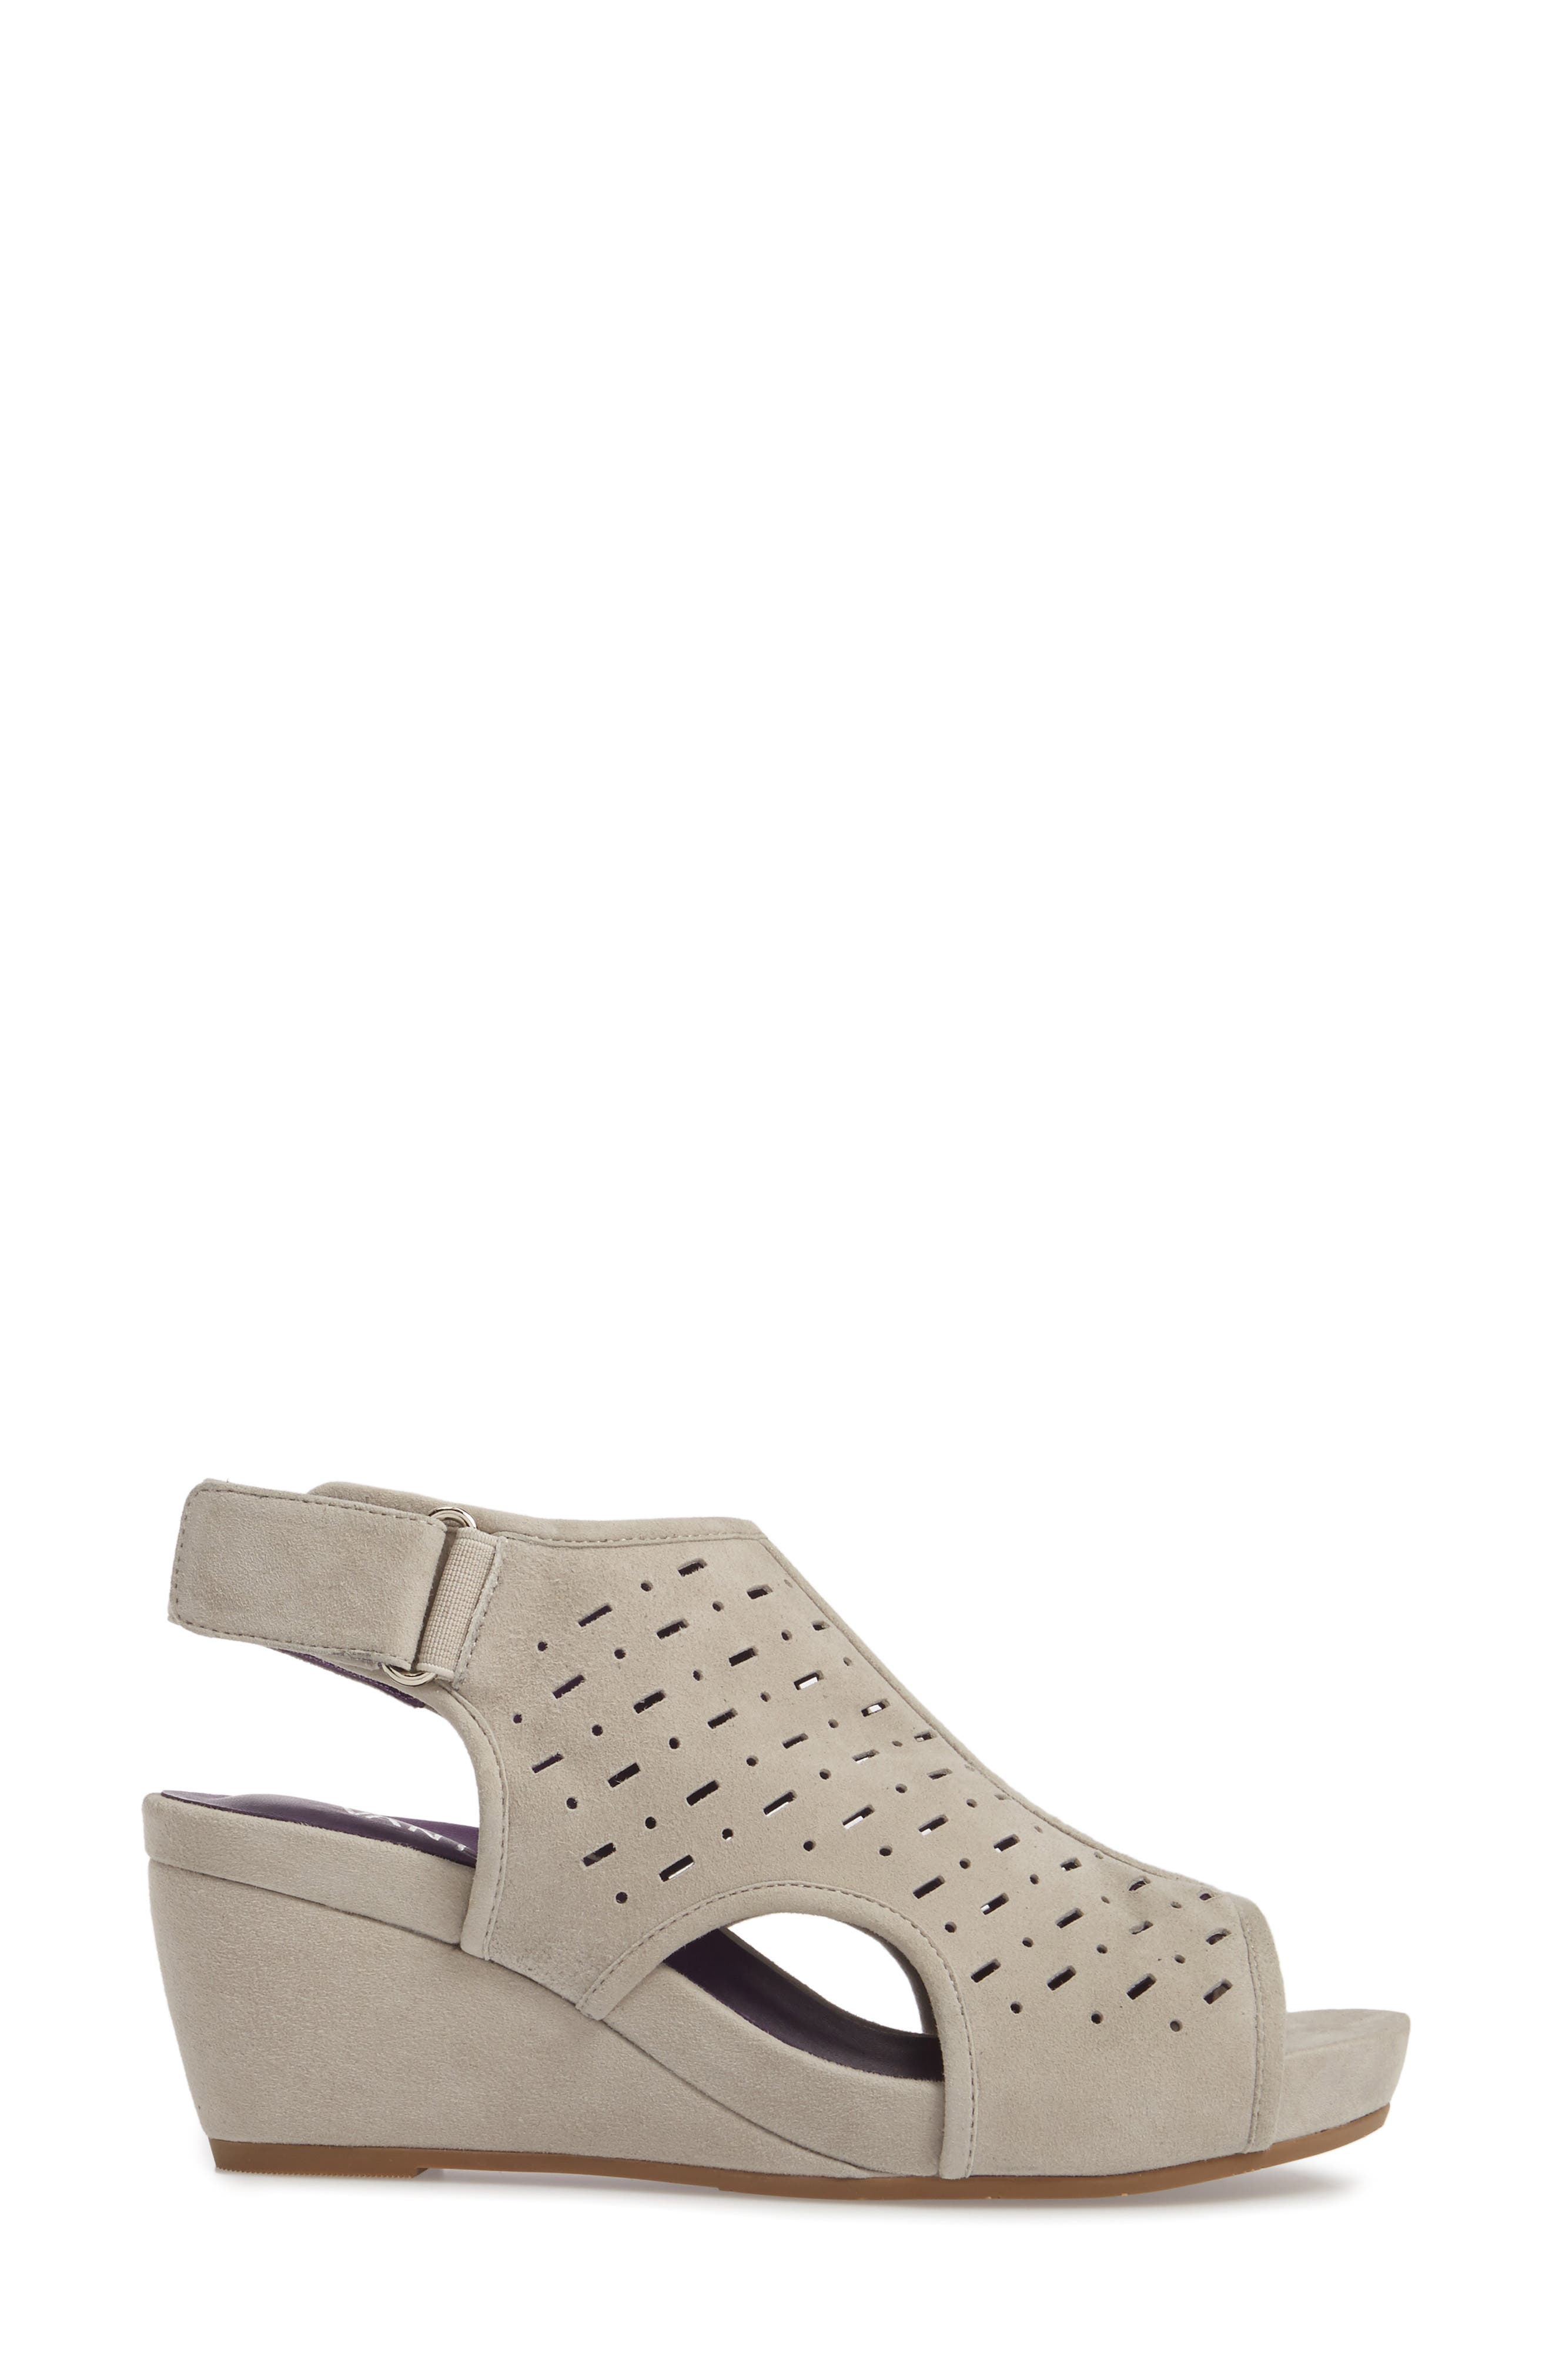 Ibis Wedge,                             Alternate thumbnail 3, color,                             Dove Suede